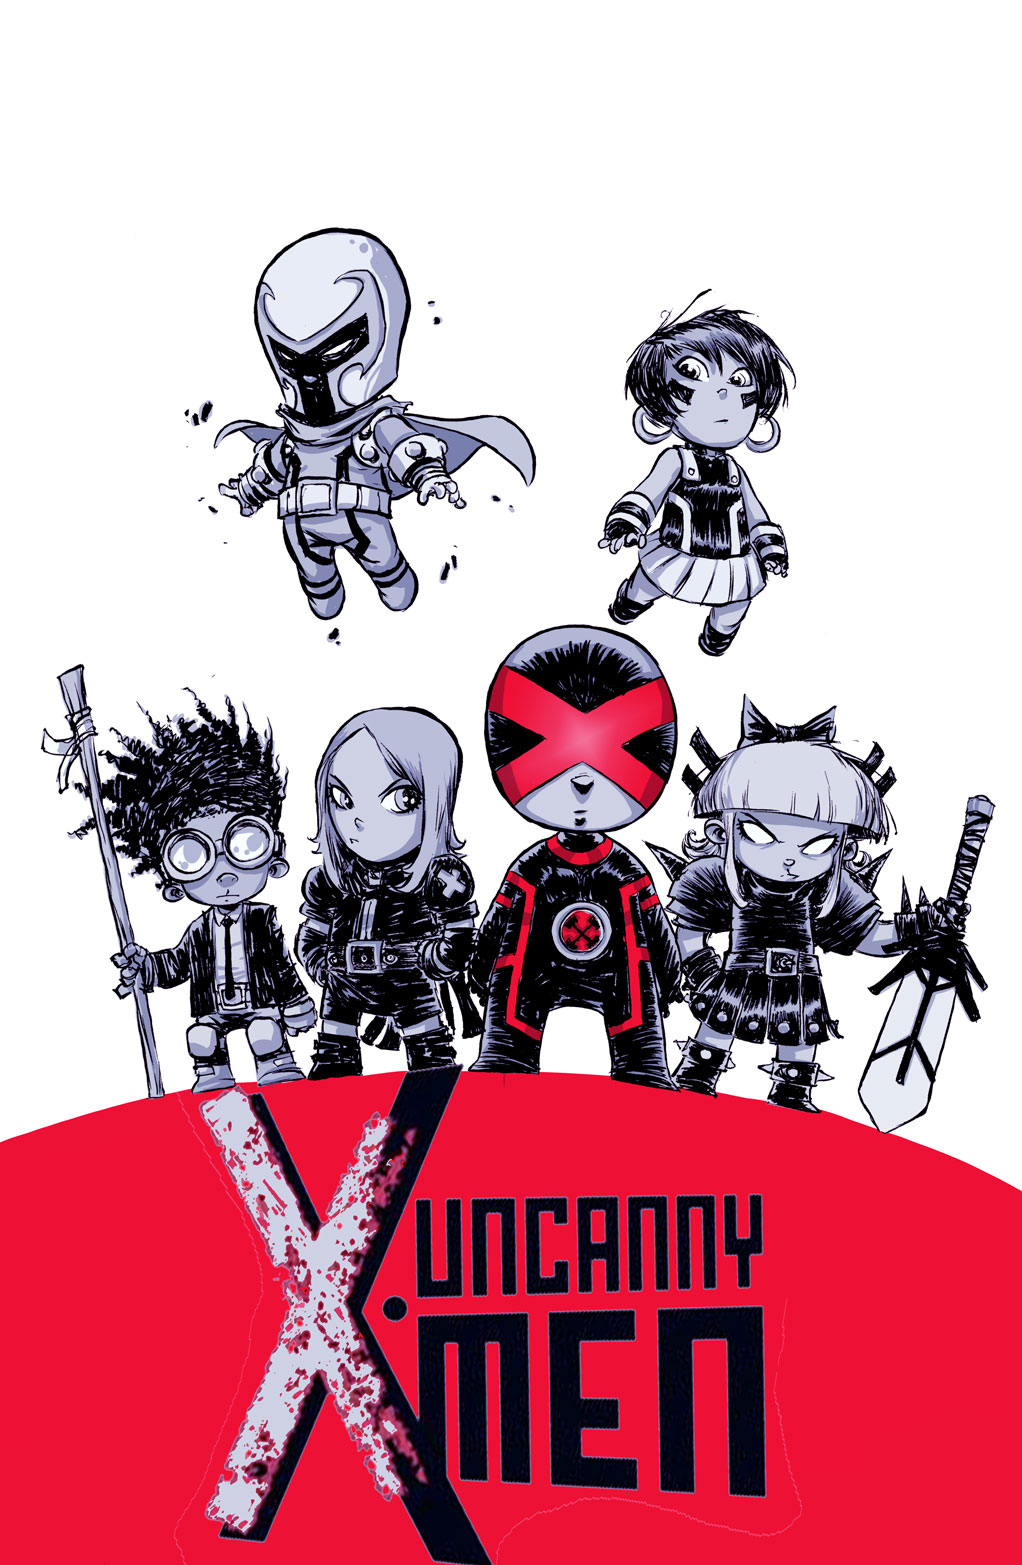 UNCANNY X-MEN #1 YOUNG VAR NOW (PP #1052)